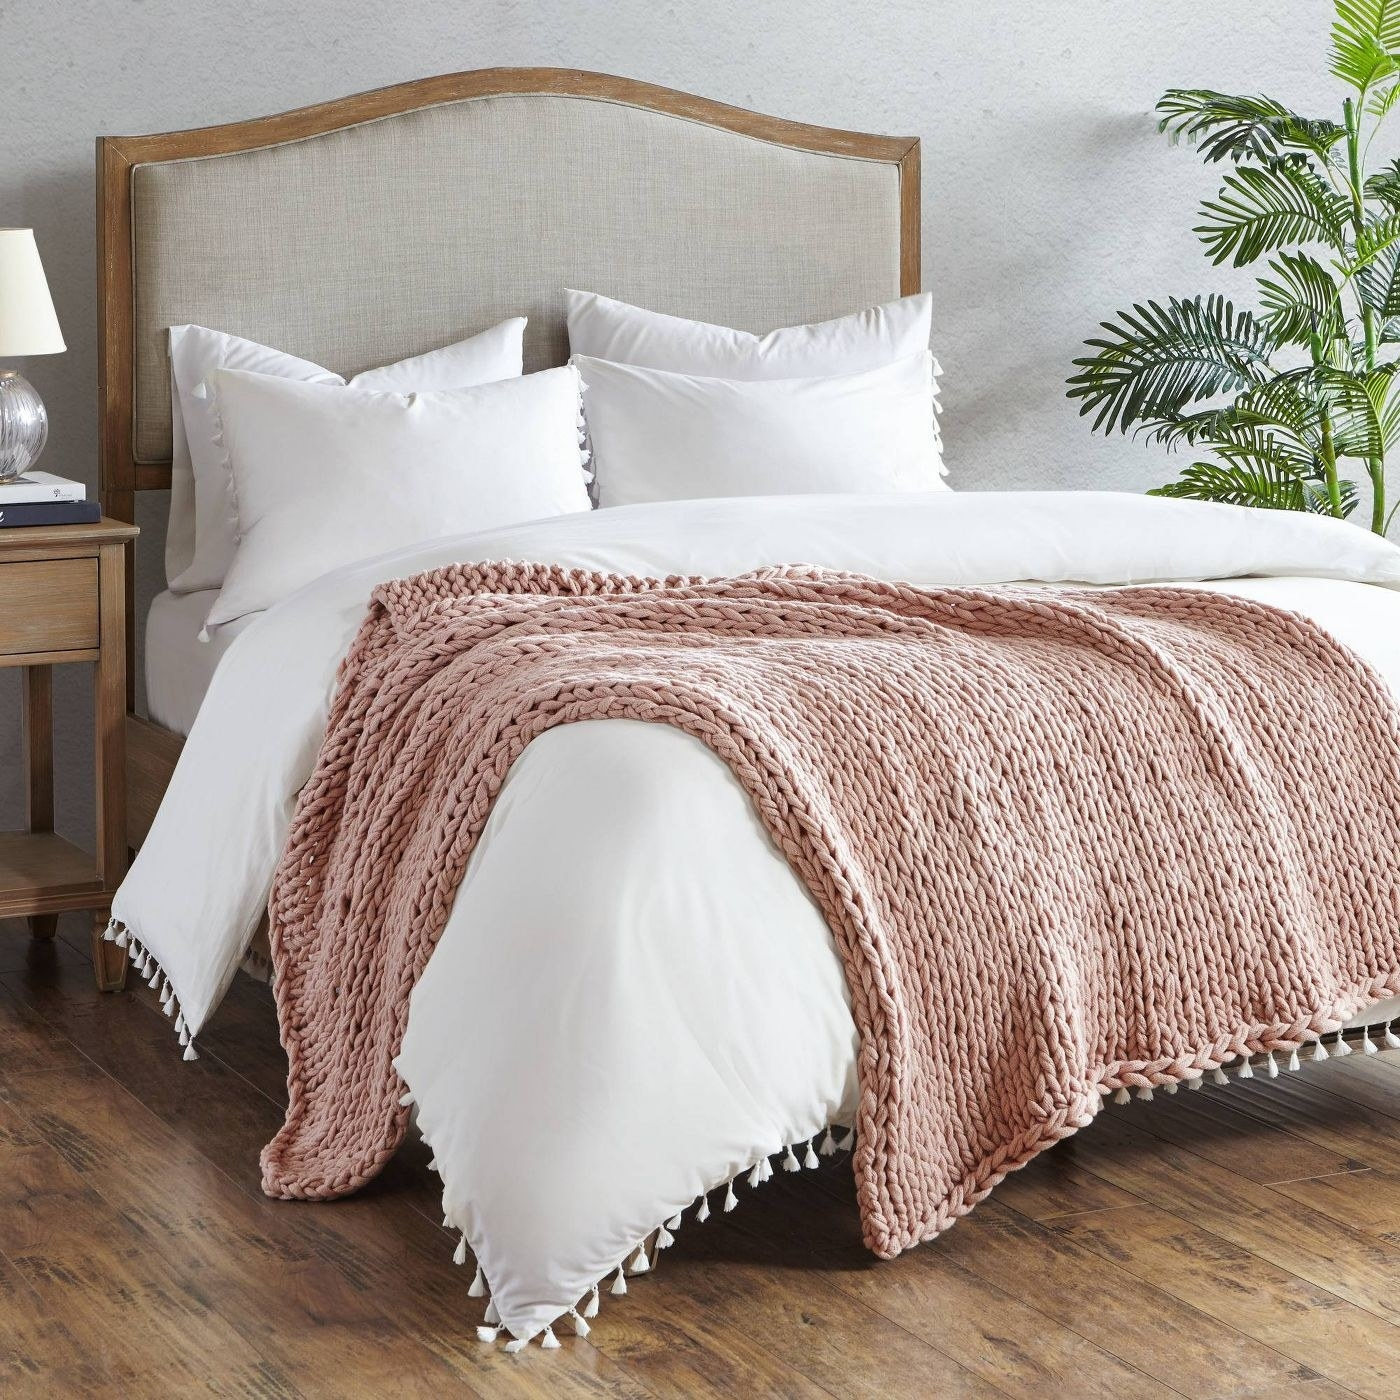 blush chunky knit throw blanket on a bed